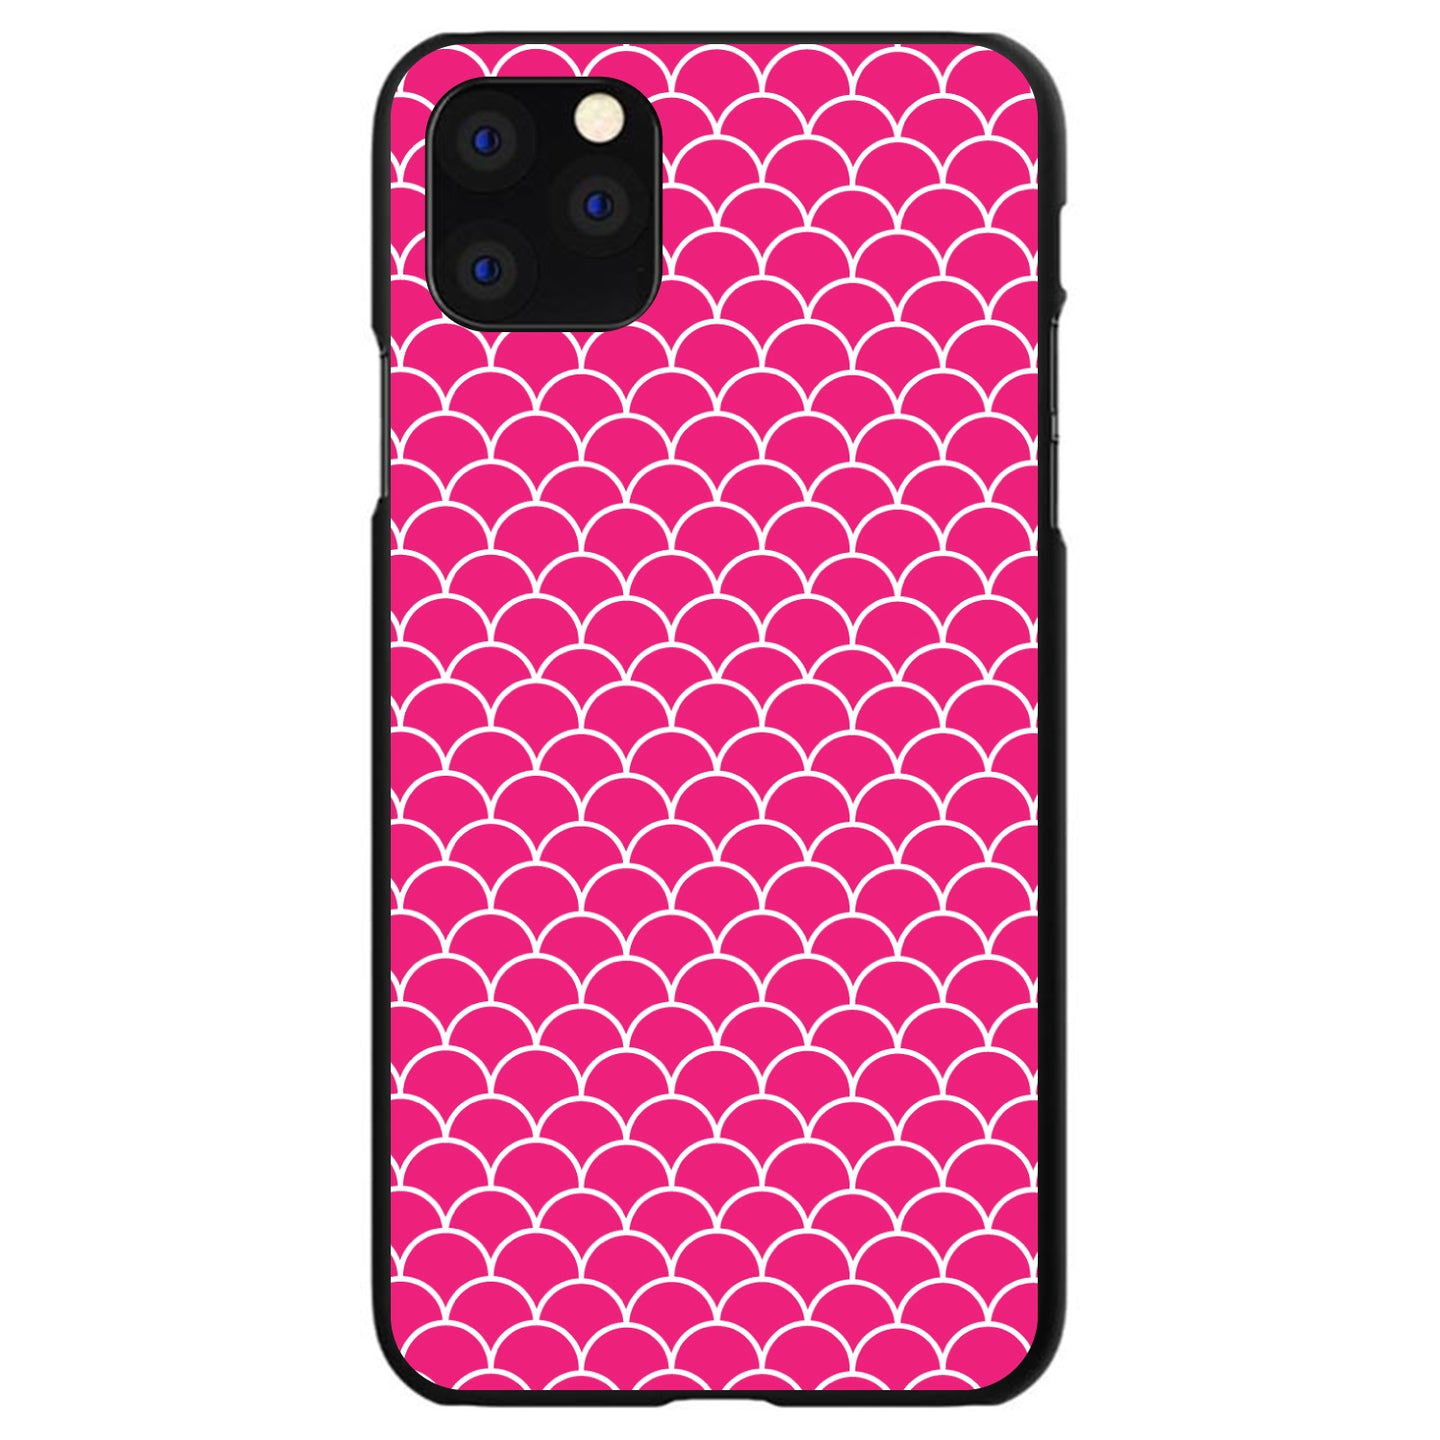 DistinctInk® Hard Plastic Snap-On Case for Apple iPhone - Hot Pink White Scalloped Pattern